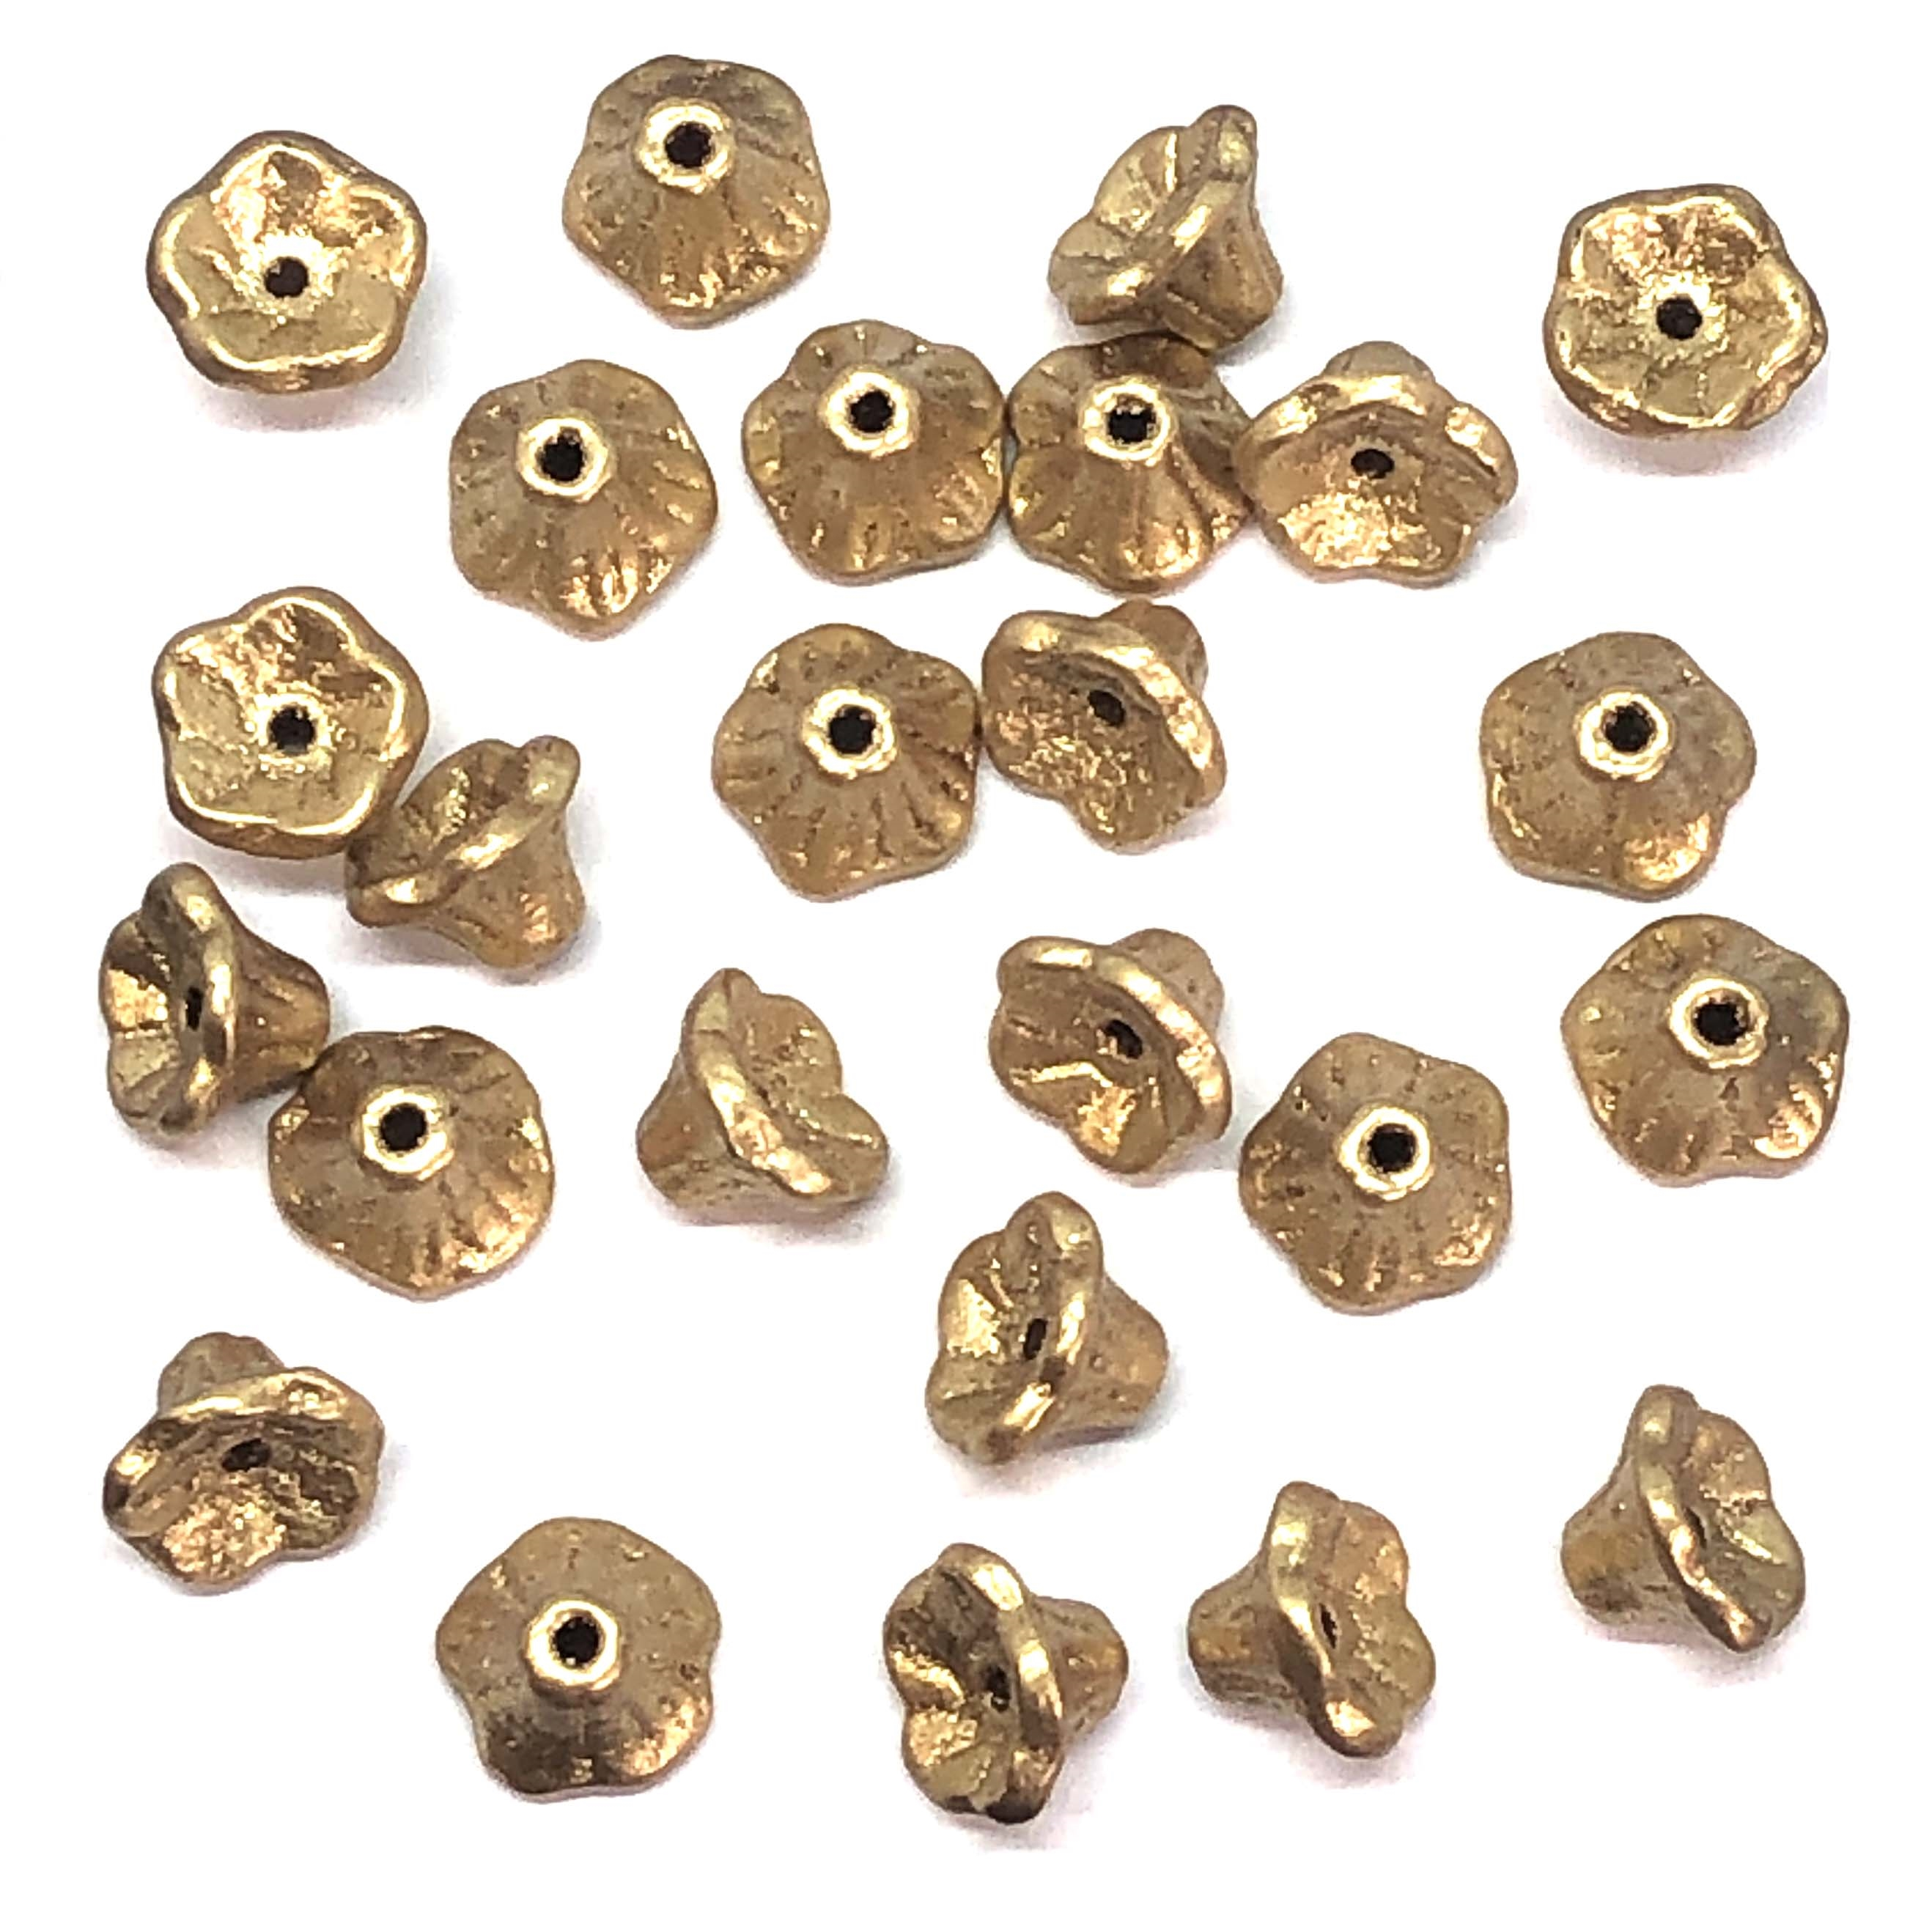 Mini Bell Flower Beads, Czech Glass Beads, 09564, flower cup beads, aztec gold, bell flowers, 5x7mm, assorted beads, beads, glass beads, metallic beads, flowers, floral beads, beading supplies, jewelry supplies, metallic gold